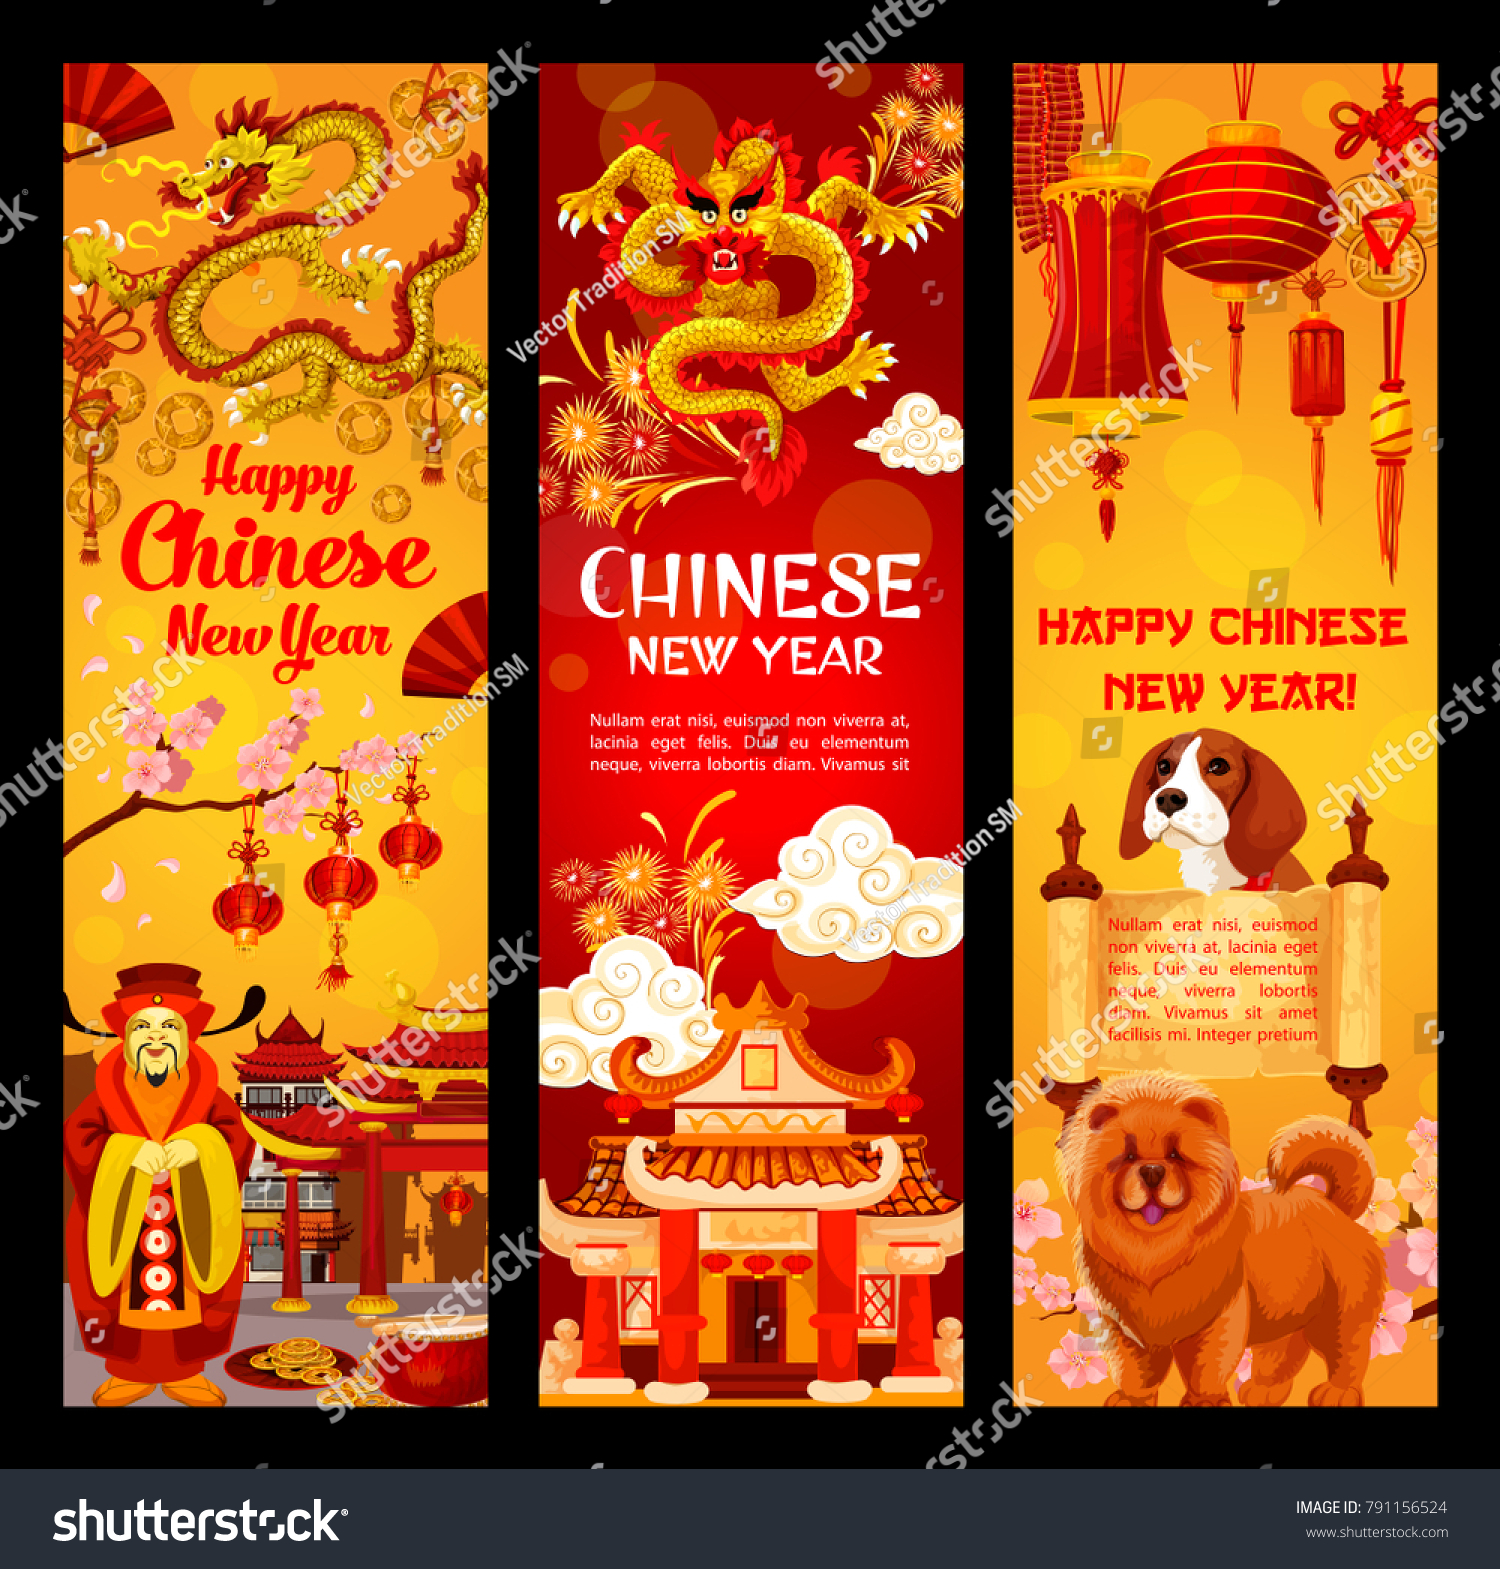 Happy Chinese New Year Greeting Banners Of Traditional Chinese